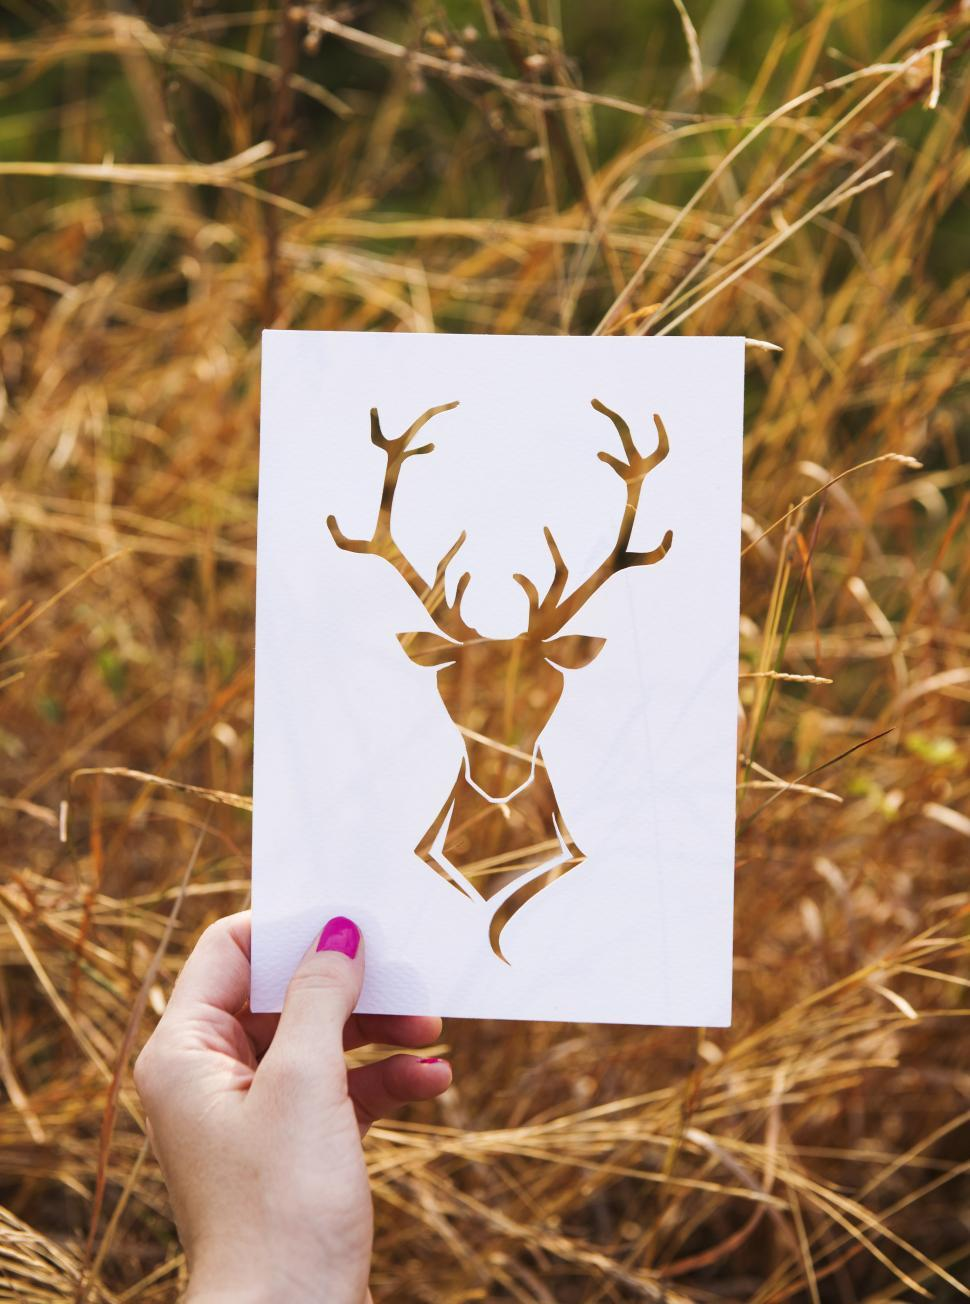 Download Free Stock HD Photo of Wild Paper Deer Cutout Online